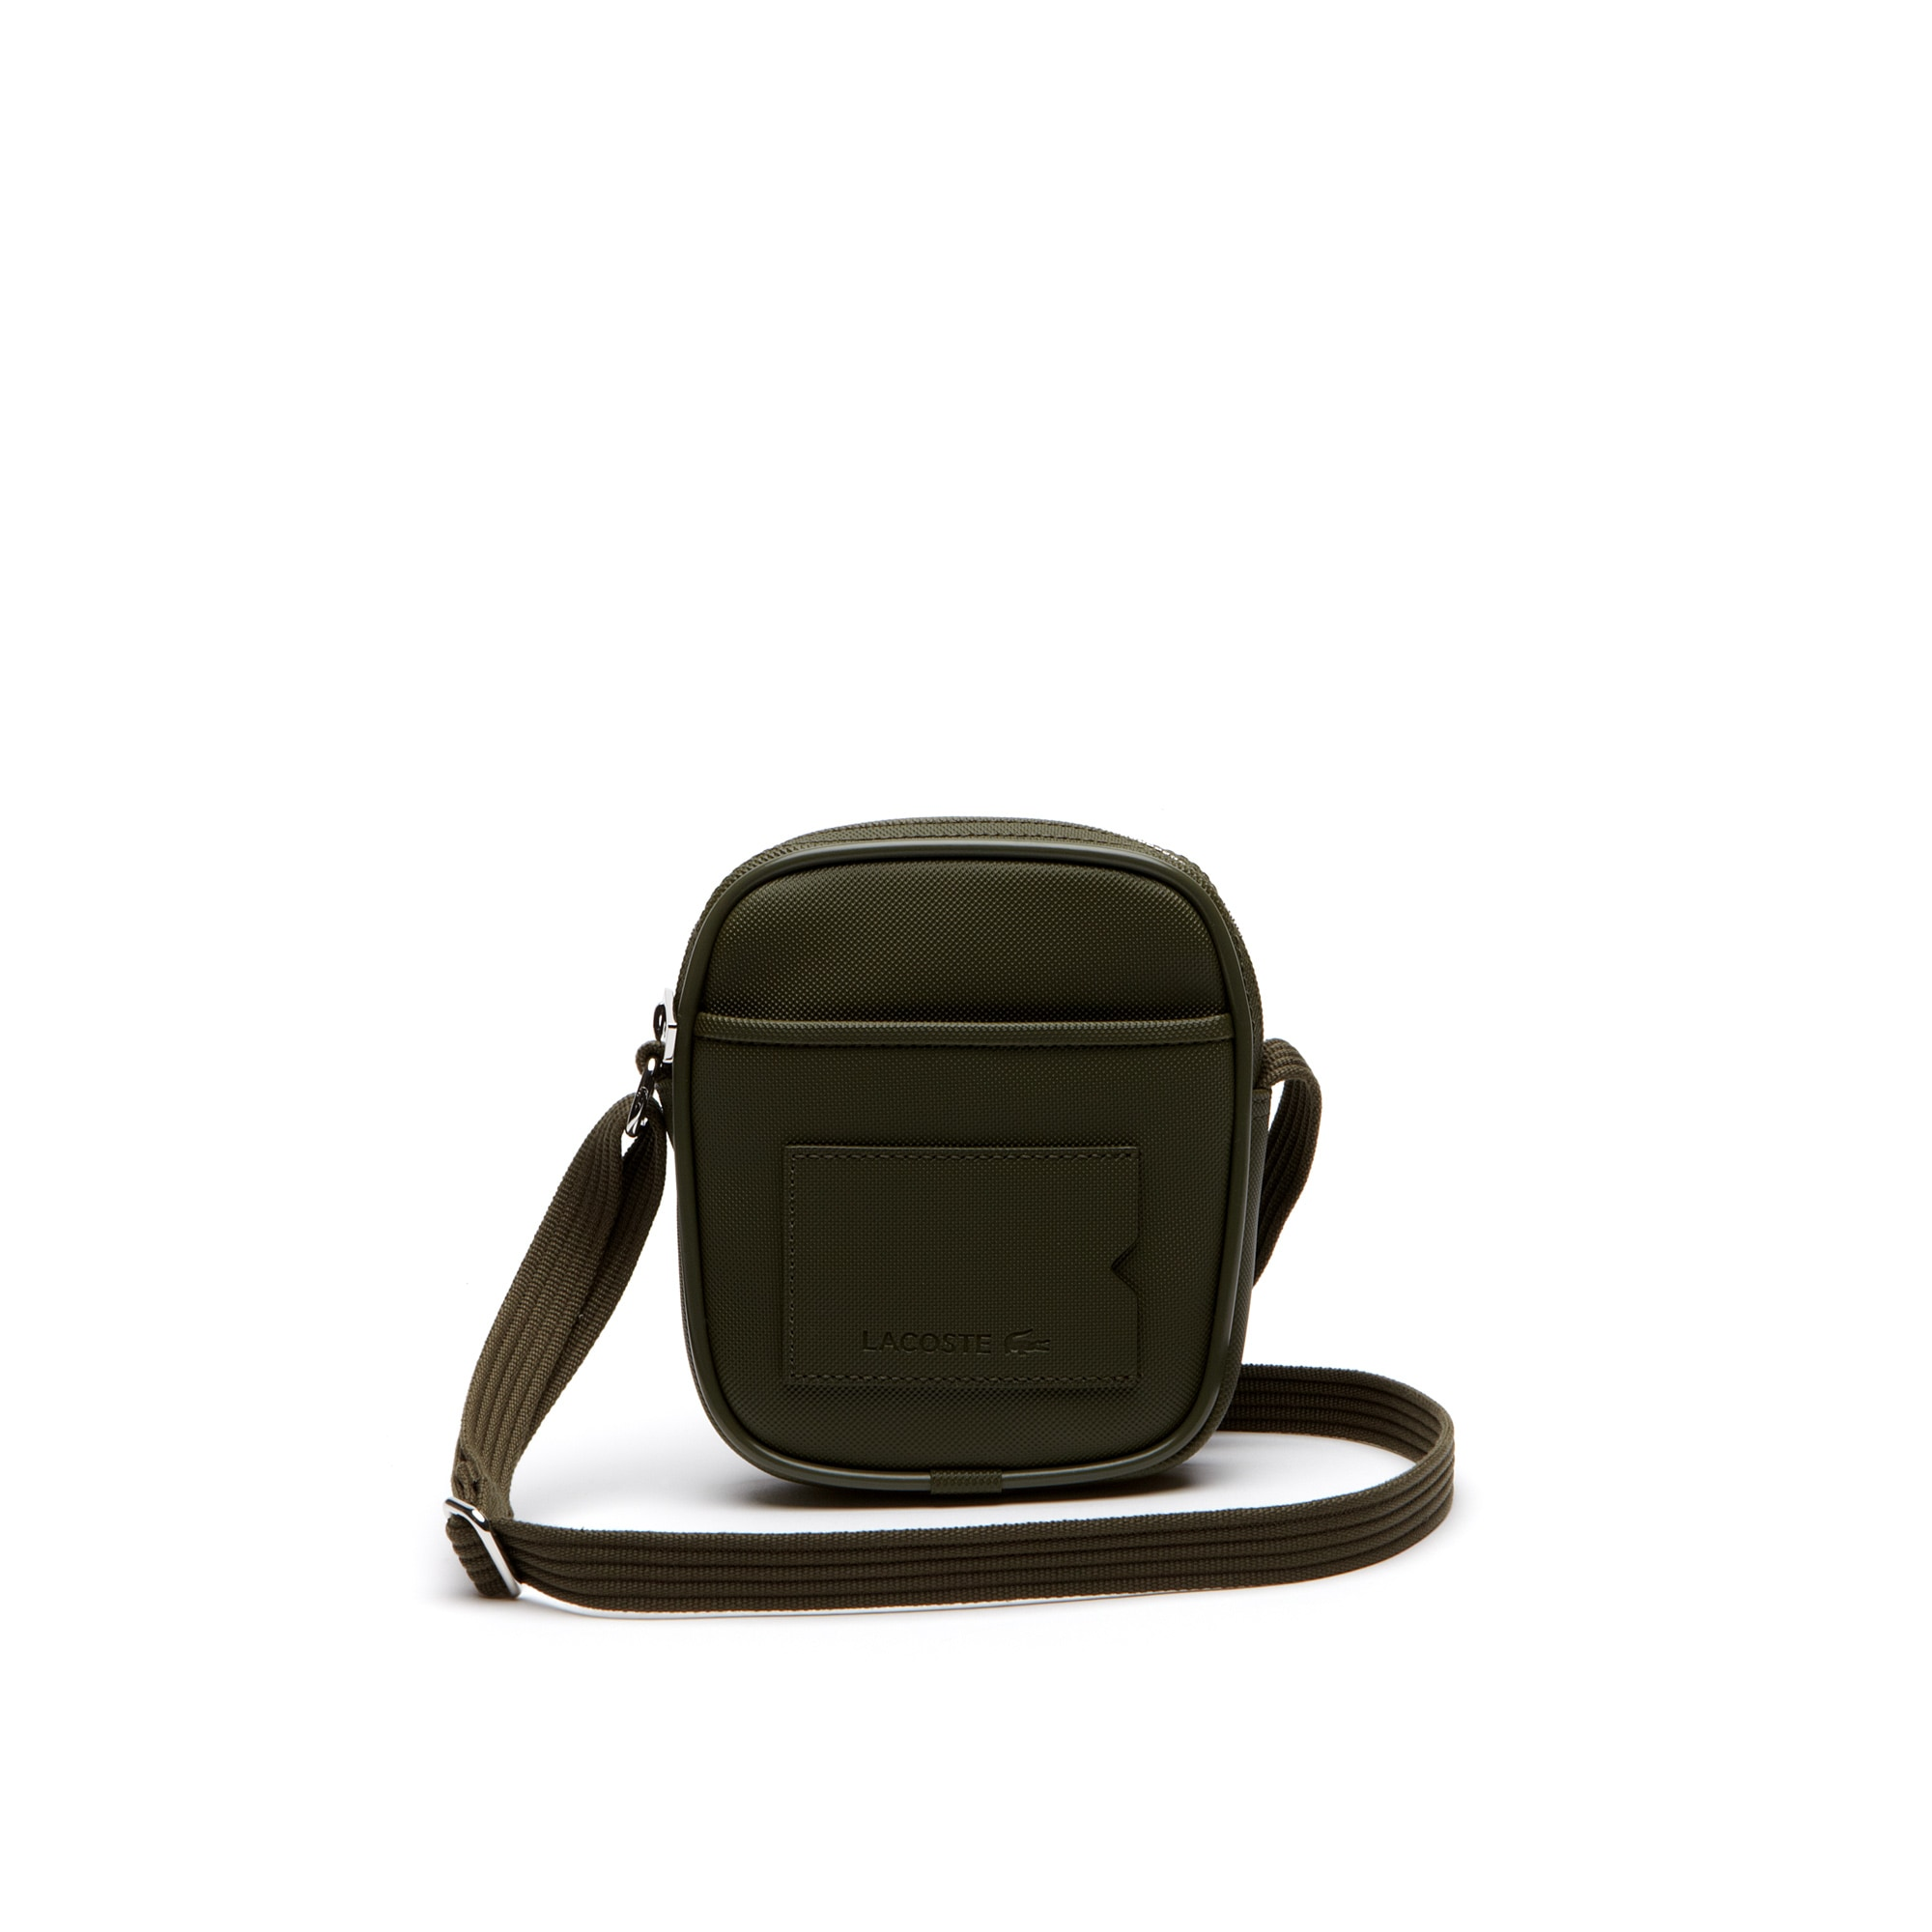 Men's classic small monochrome camera bag